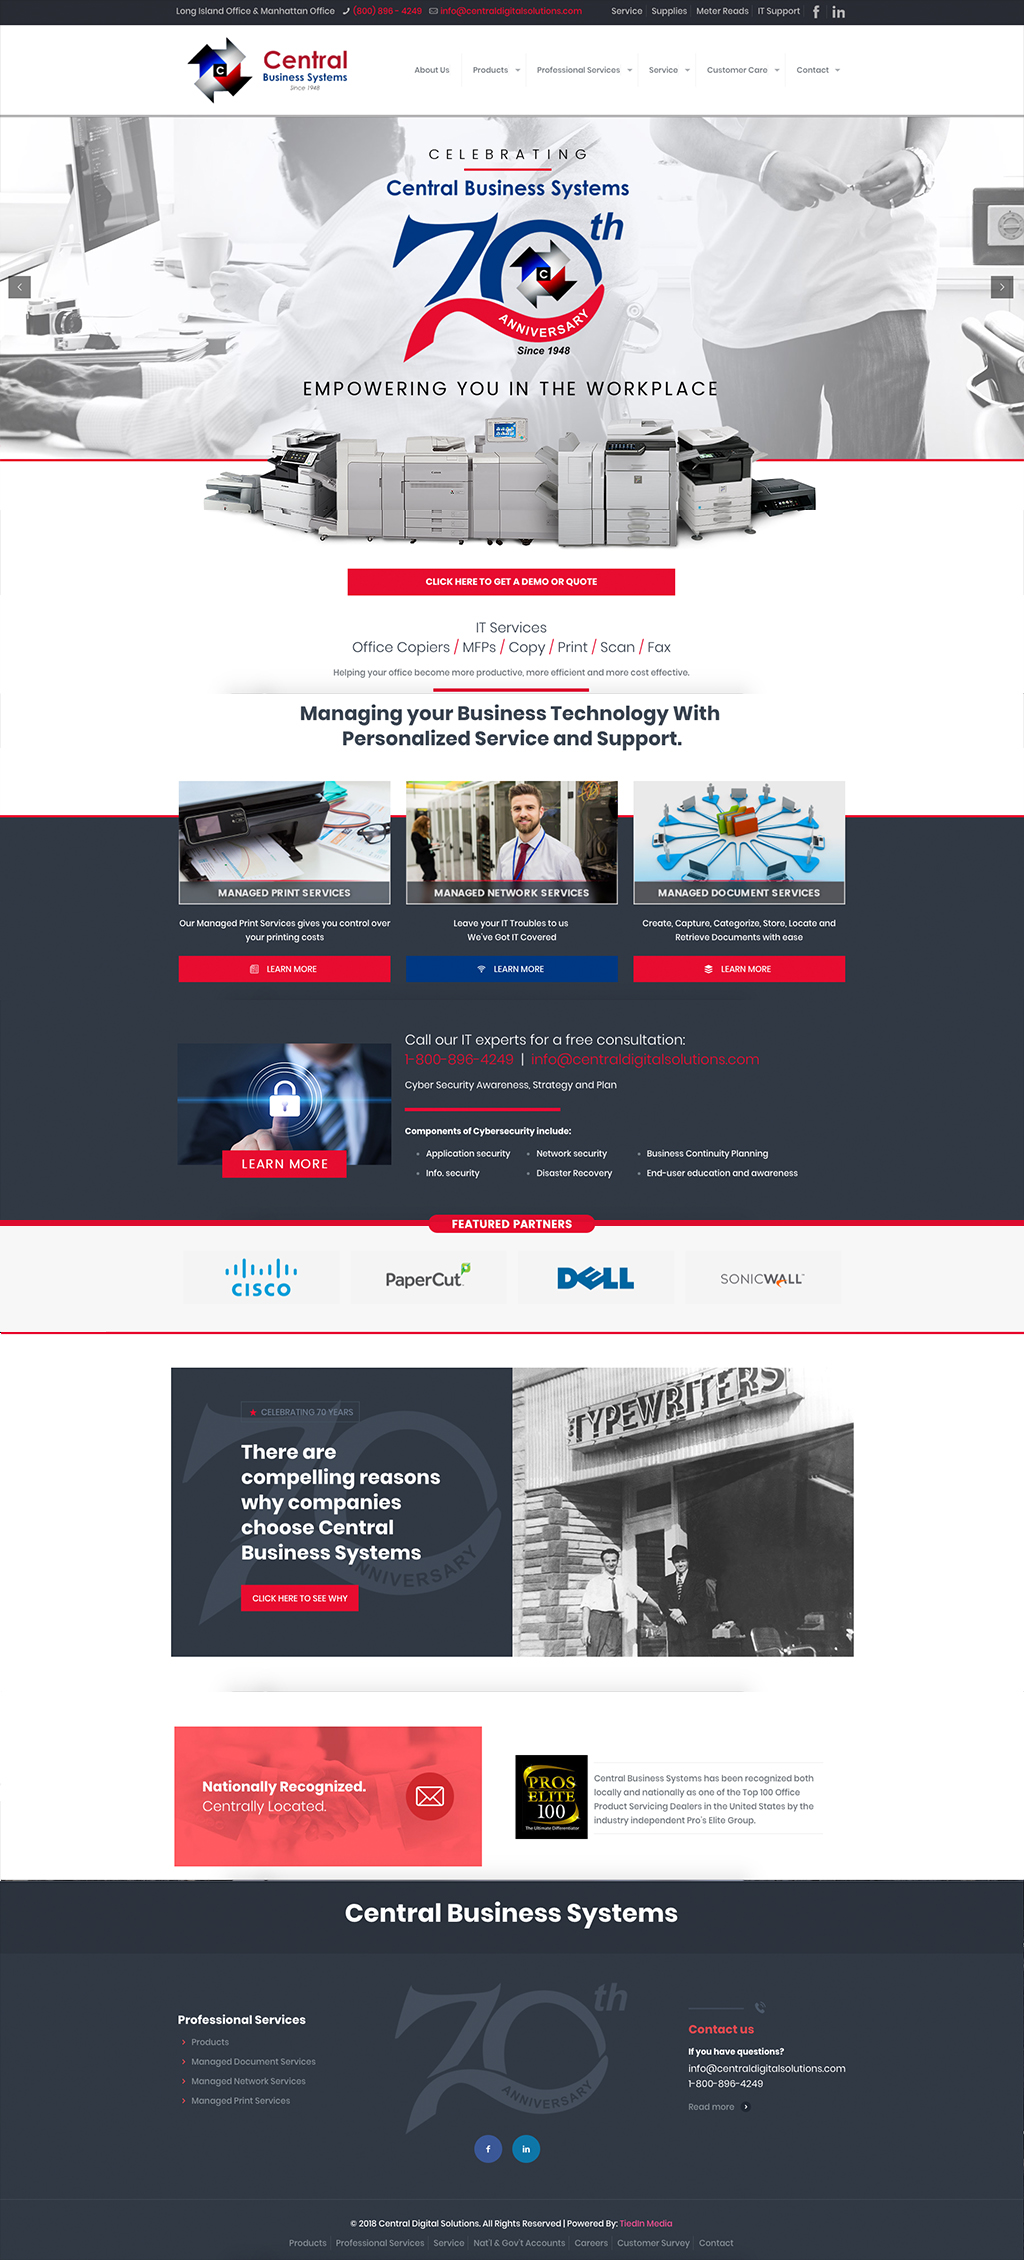 Central-Business-Systems-full-site